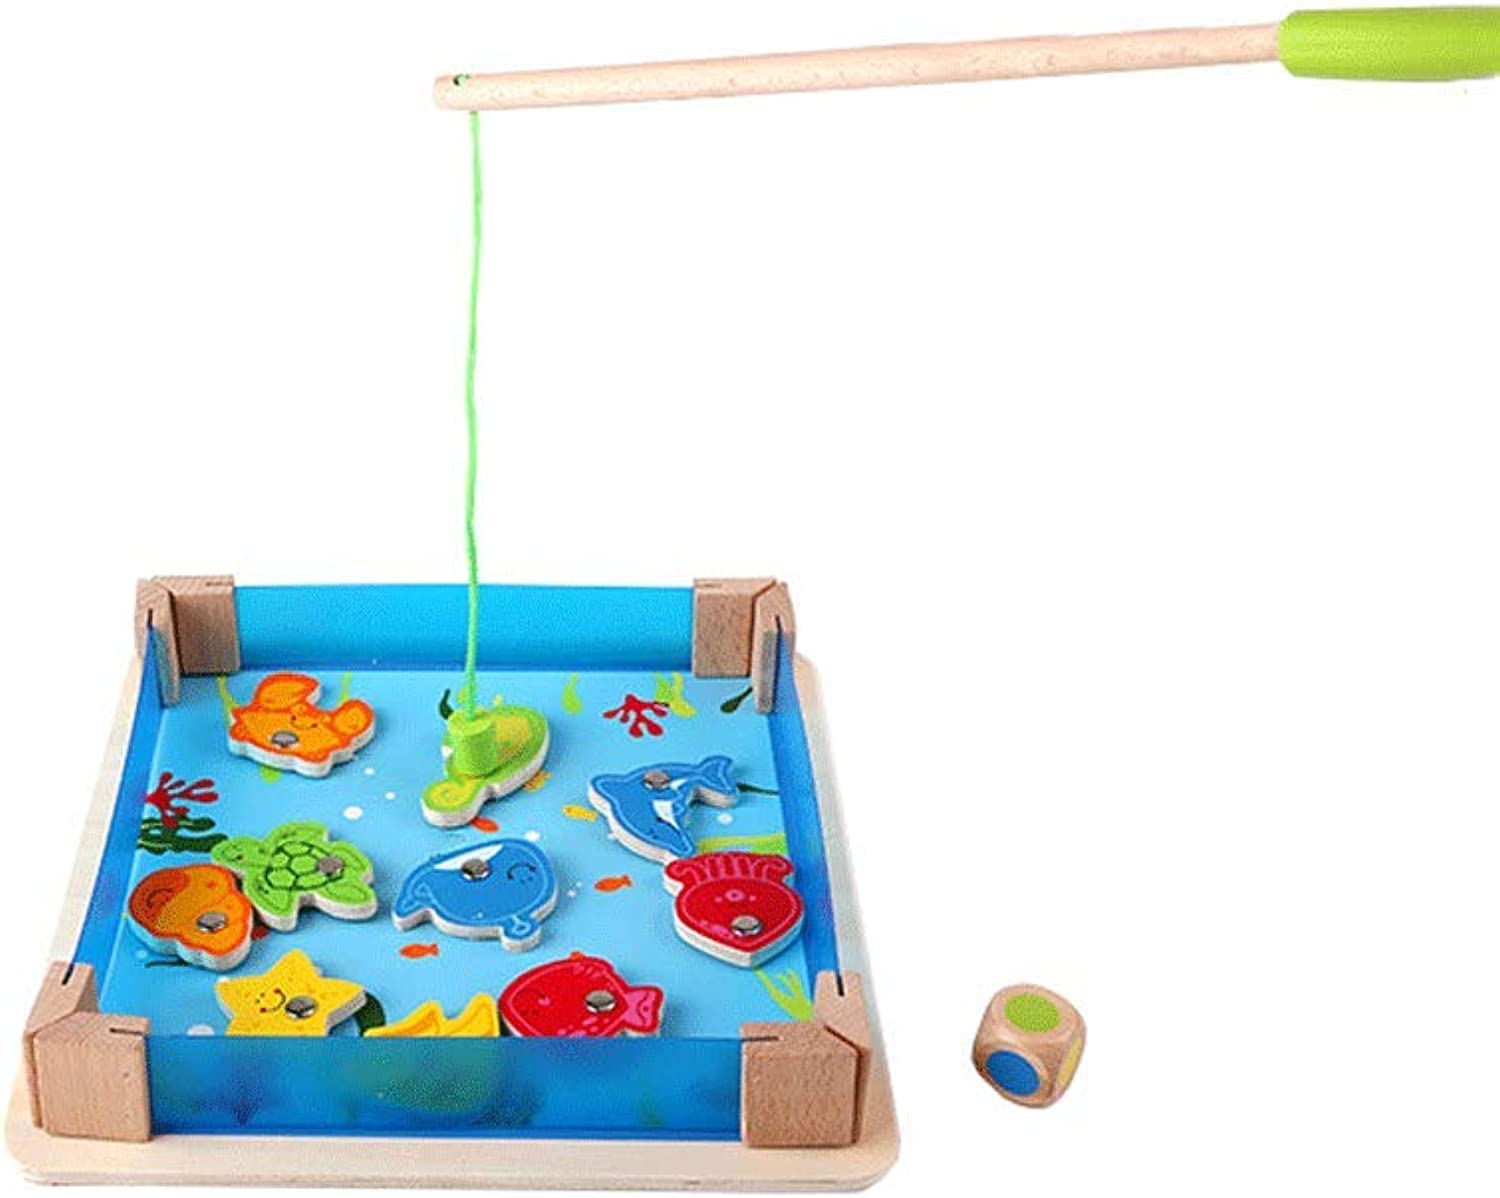 LIUFSToy Pond Fishing Game Educational Toy Set Magnetic 36 Years Old (color   Multicolord, Size   L)